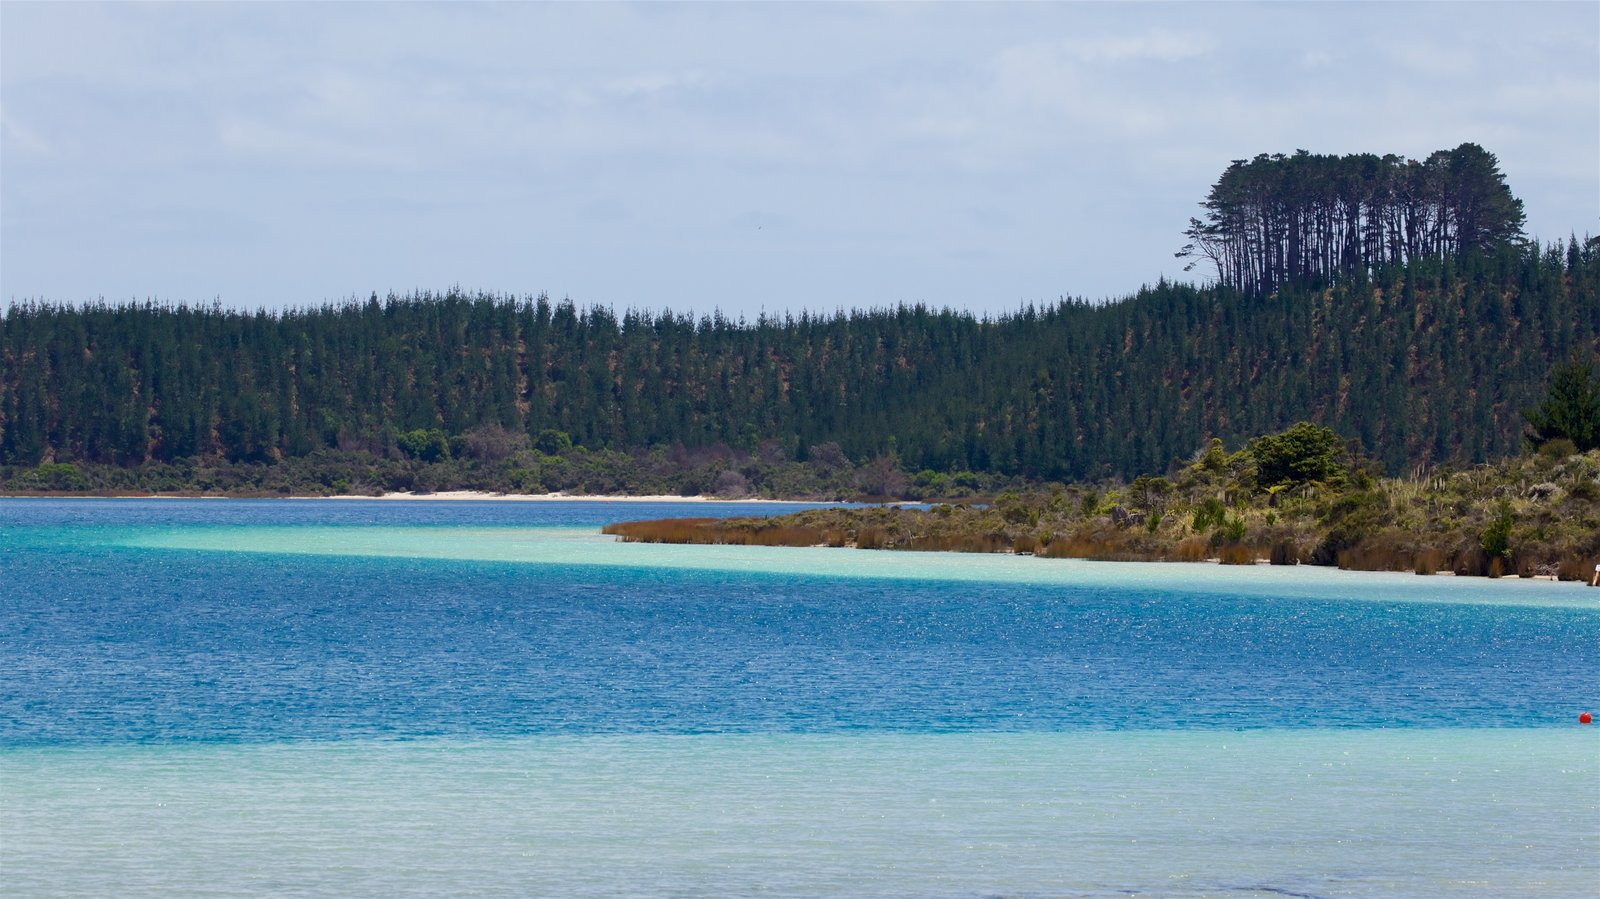 Kai Iwi Lakes which includes a river or creek and tranquil scenes